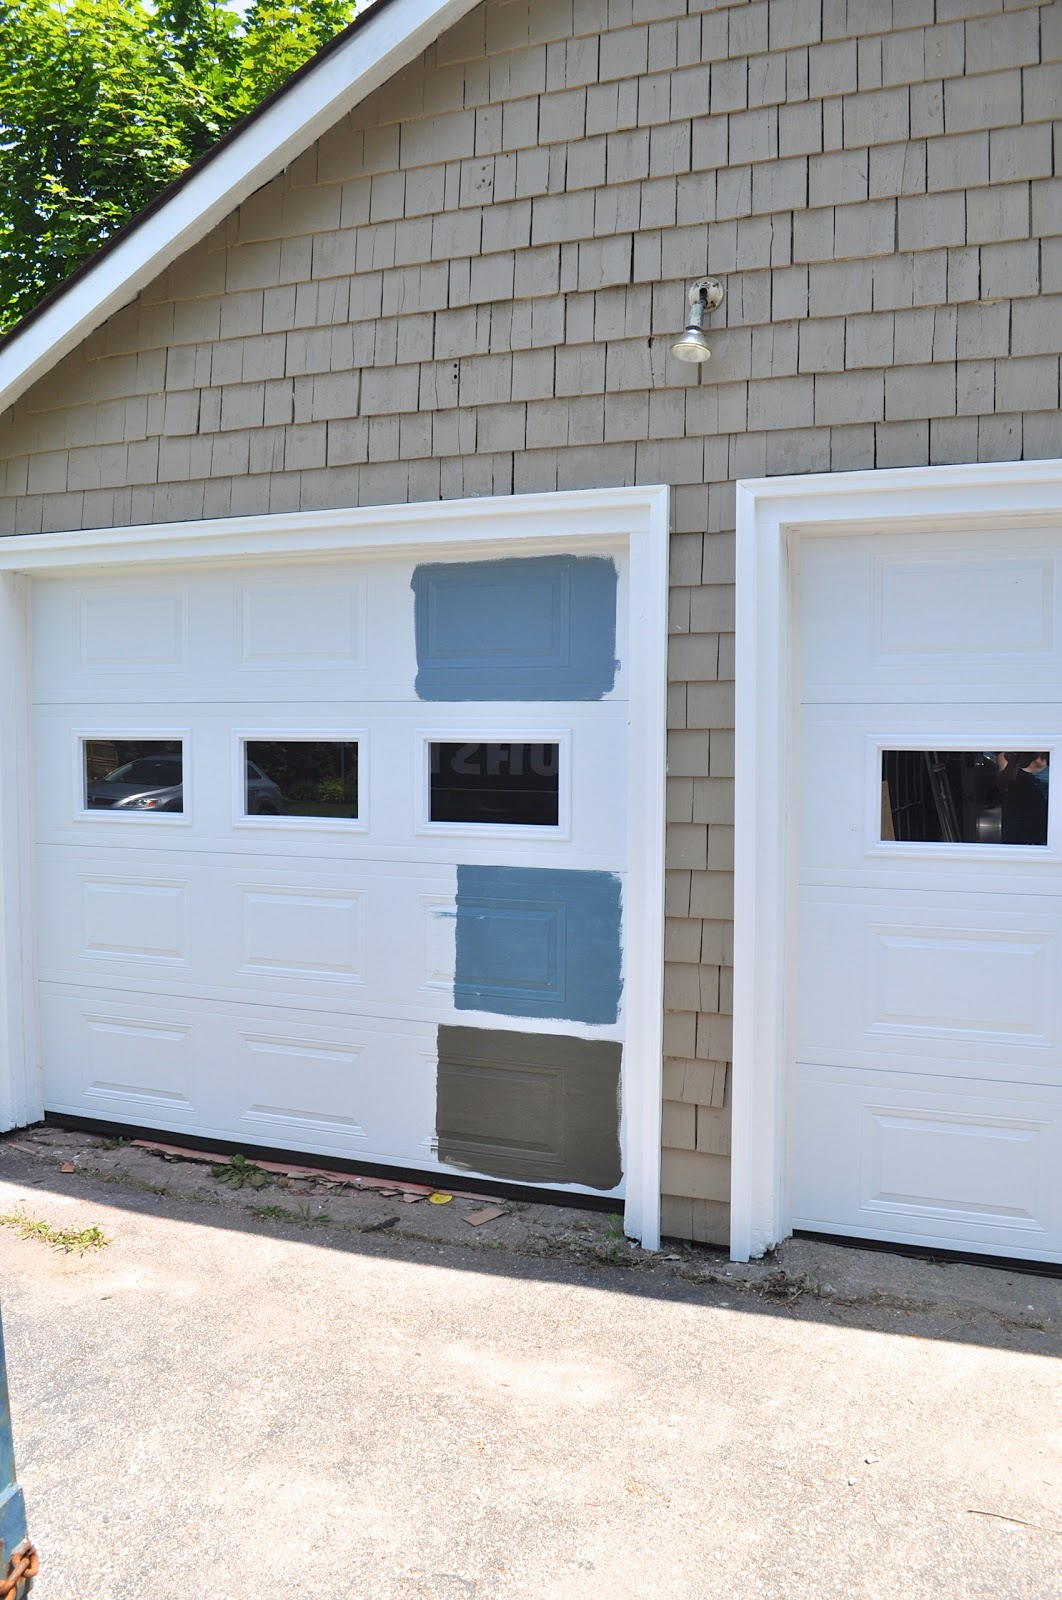 1600 #456424 Painting The Garage Door And Garage Door Trim The Same Color As The  pic Garage Doors Colors 37511062